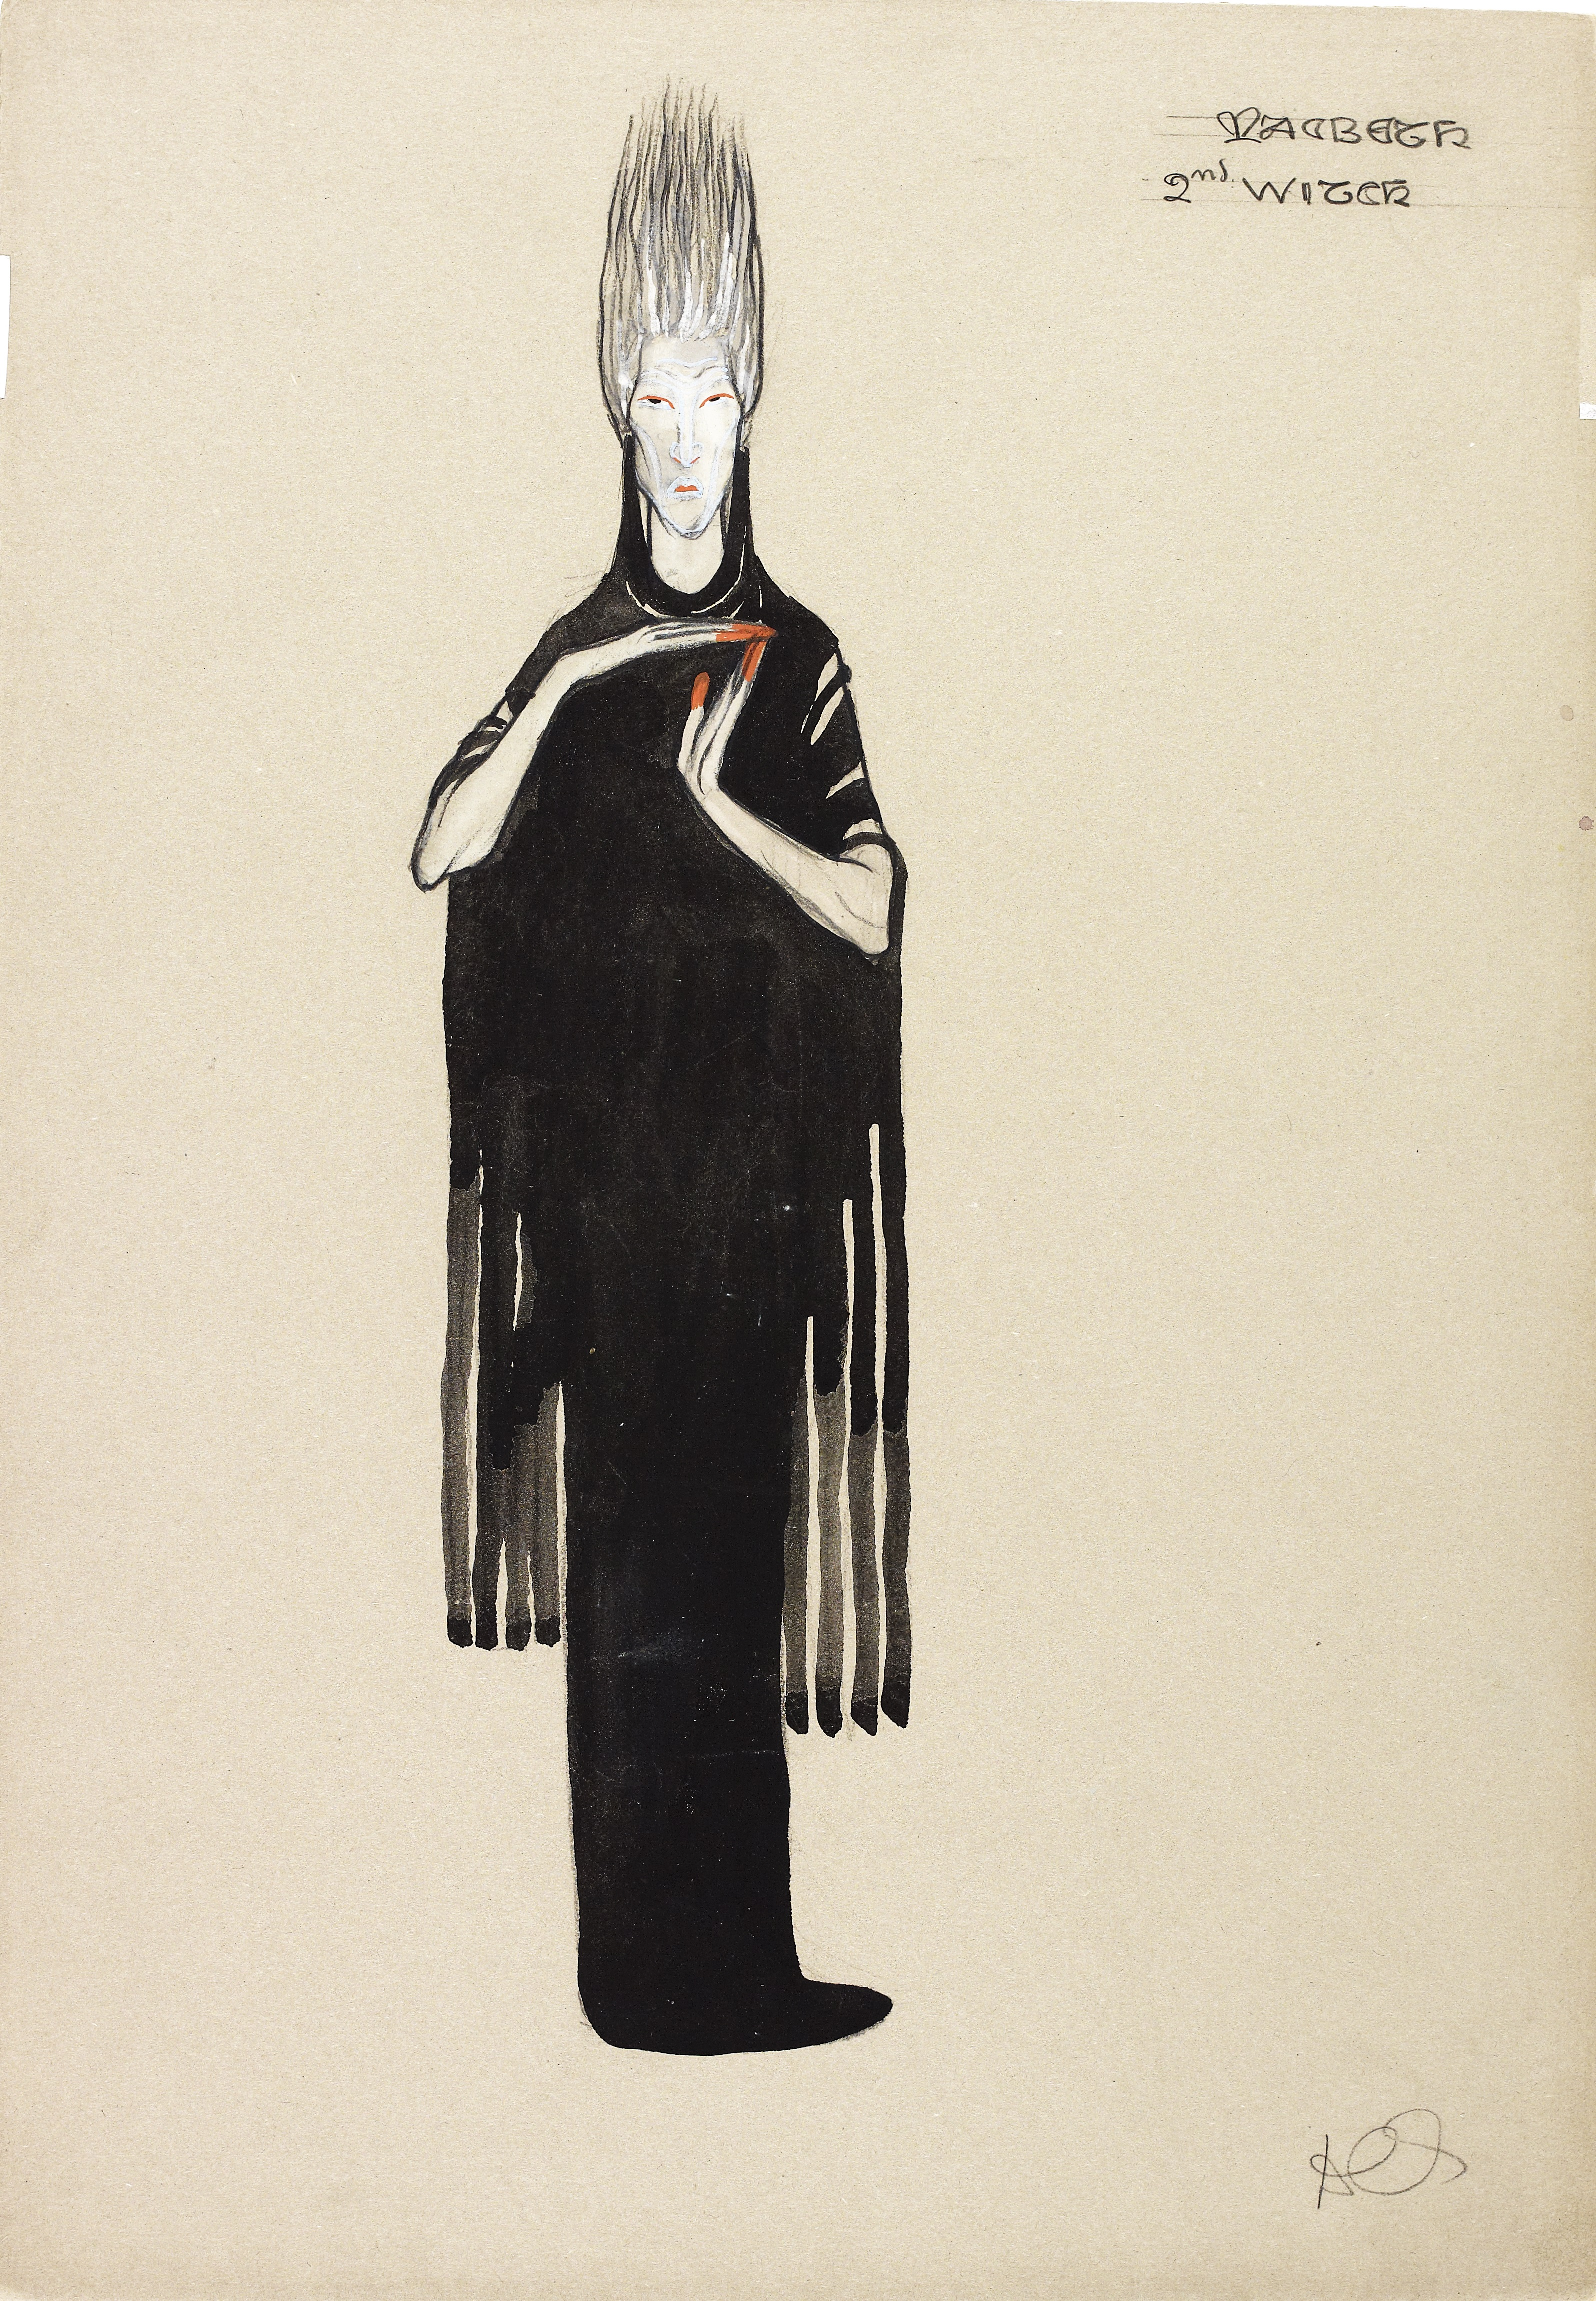 NMC096/U Costume design for the 2nd witch in Macbeth, but Dorothy Carleton Smyth, 1933